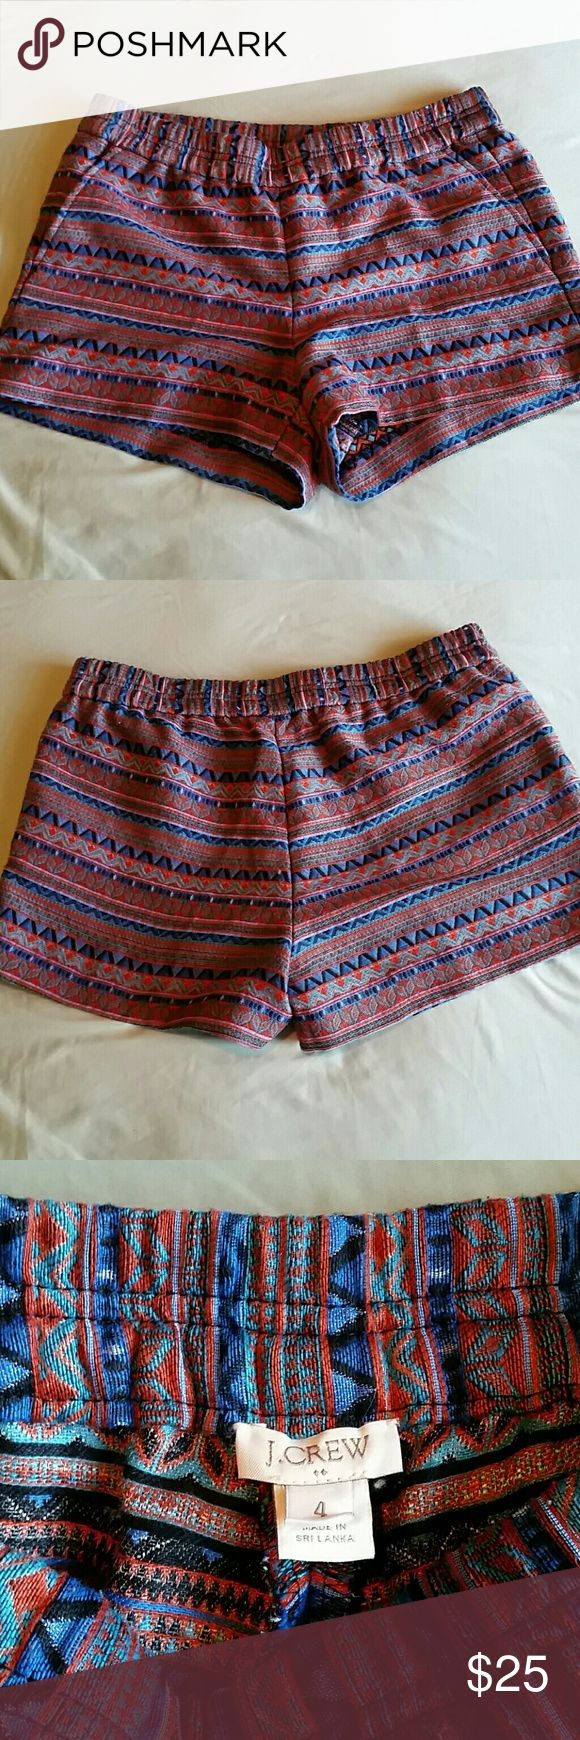 """J Crew Multi Color Shorts size 4 These have pockets and are super cute! 11.5"""" long, 3"""" inseam J. Crew Shorts"""